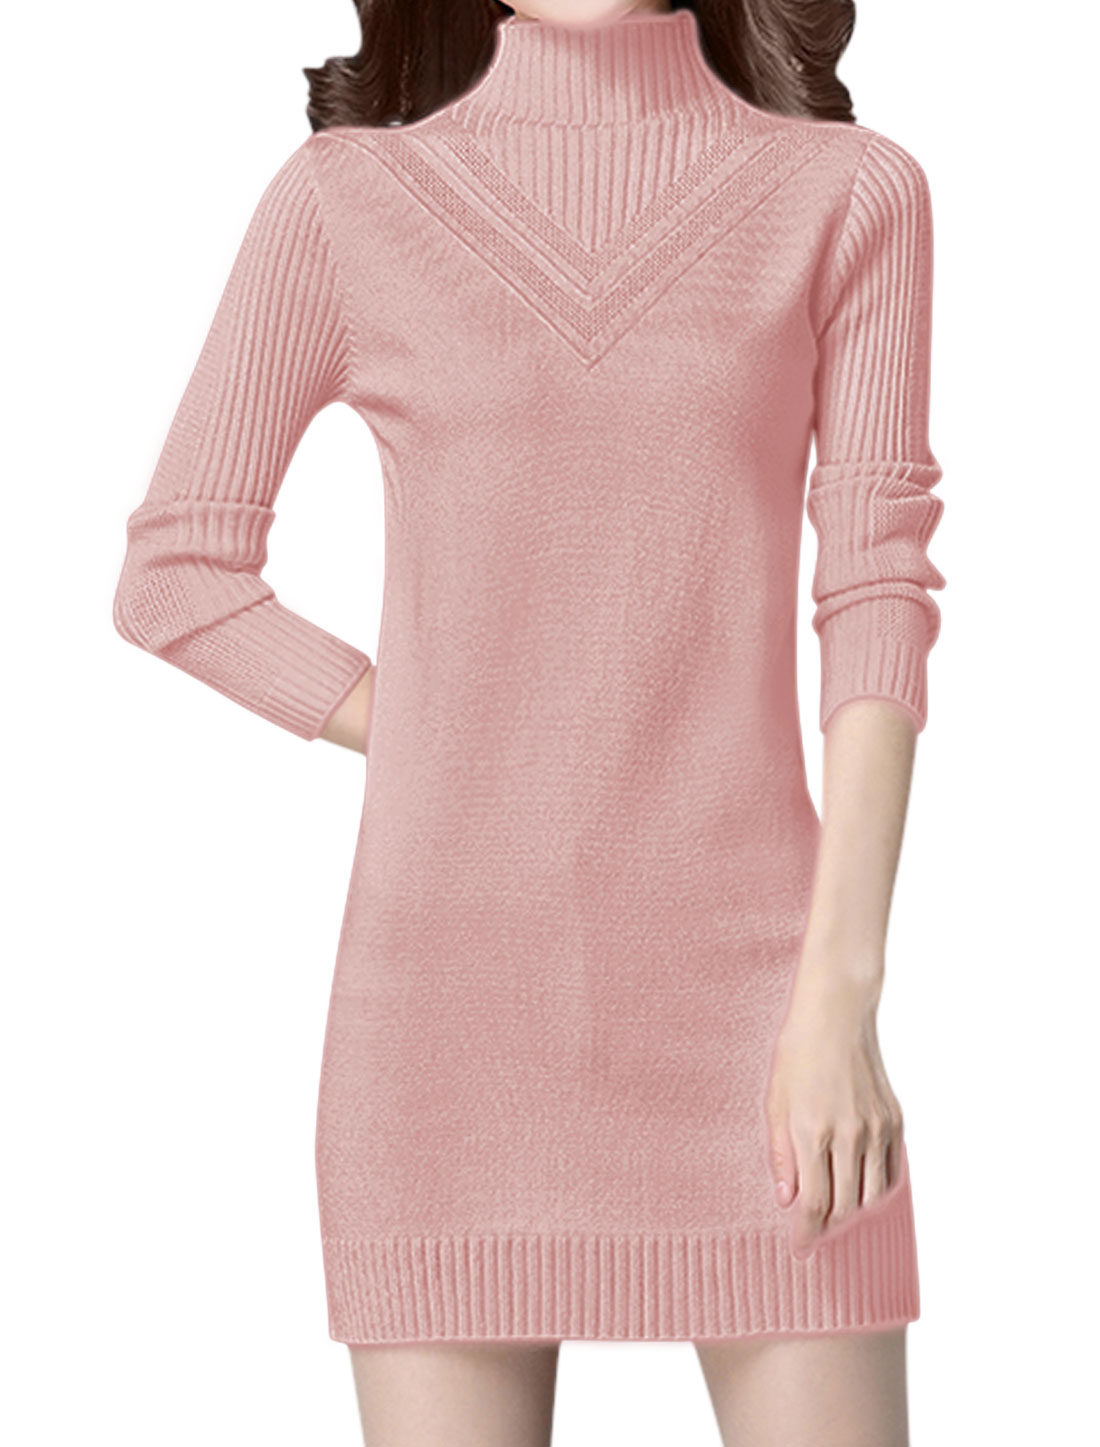 Women Turtle Neck Long Sleeves Slim Fit Tunic Knit Dress Pink XS